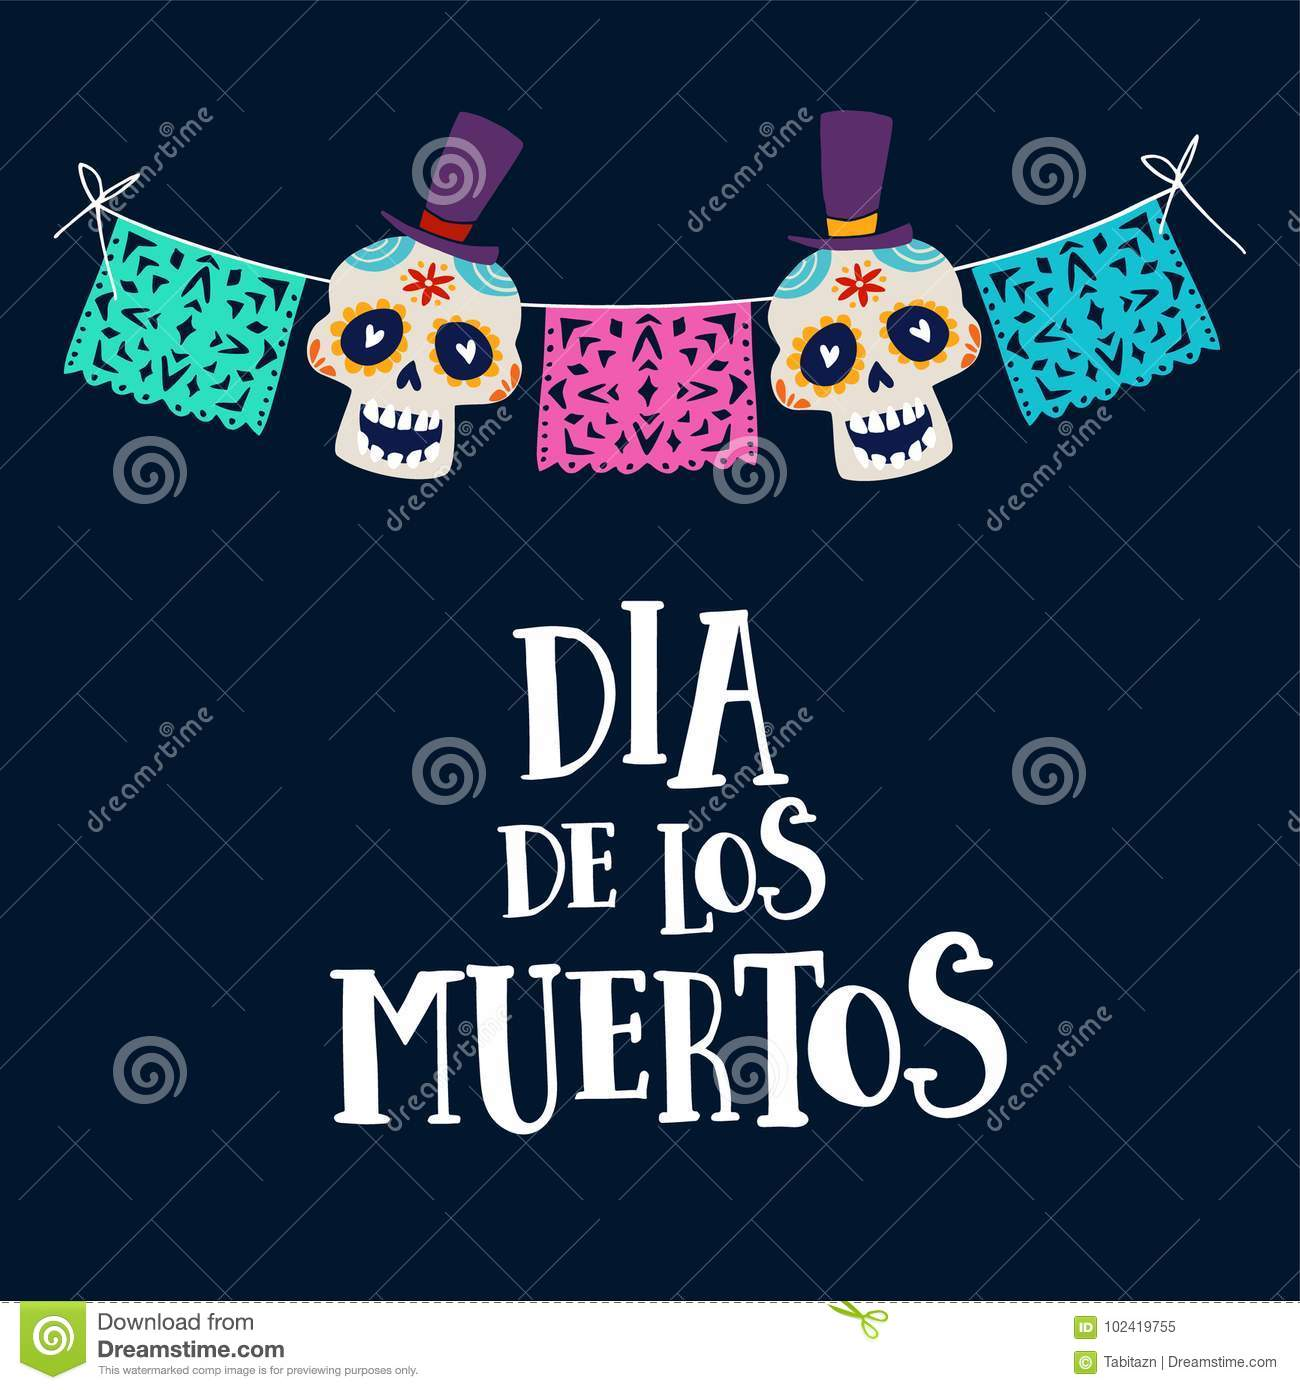 Dia de los Muertos greeting card, invitation. Mexican Day of the Dead. String decoration with party flags and ornametal